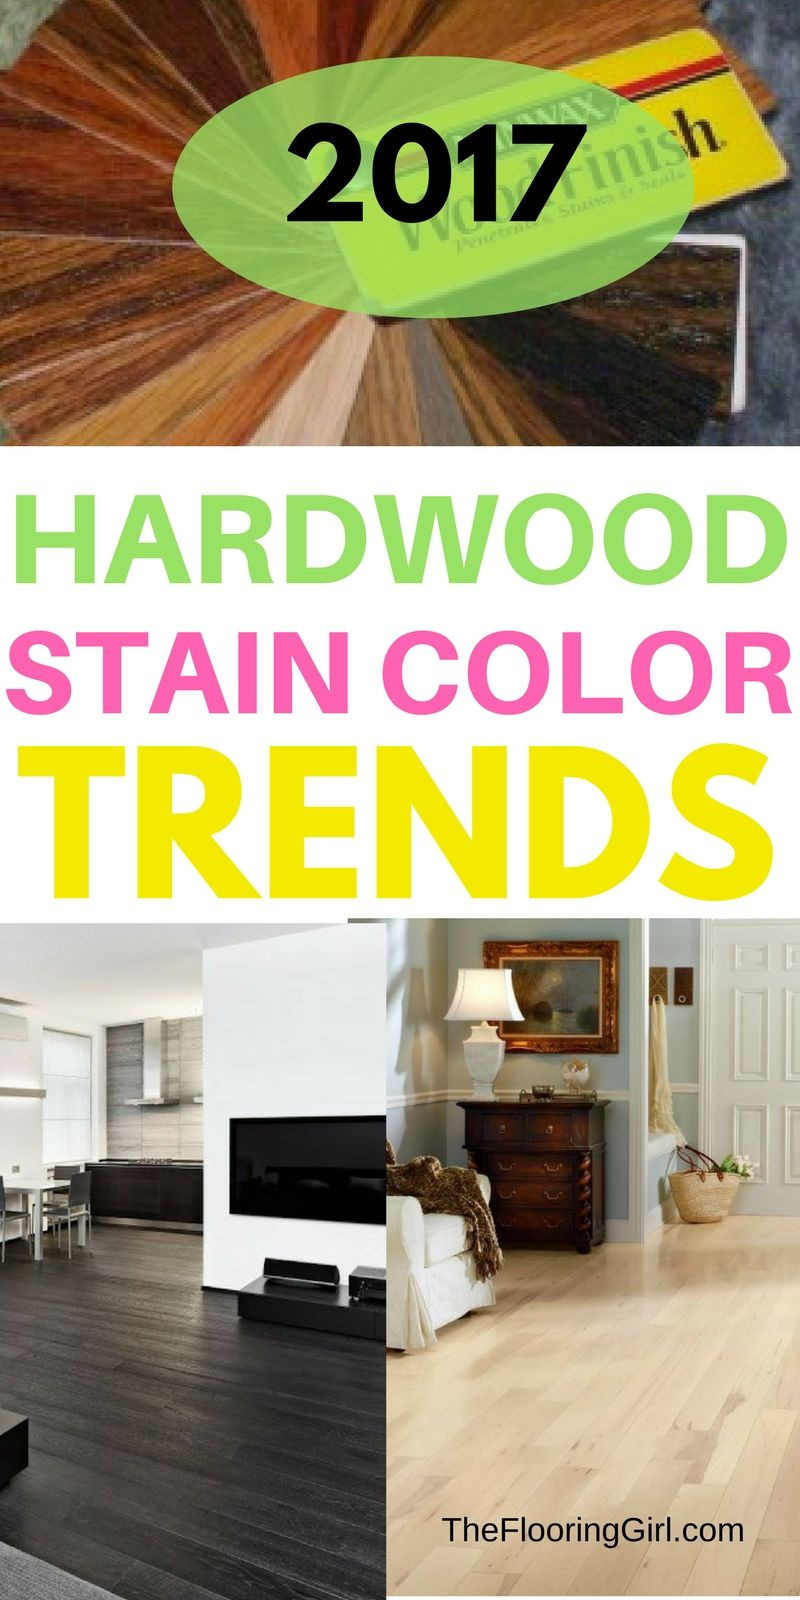 dark hardwood floors wall color of hardwood flooring stain color trends 2018 more from the flooring within hardwood flooring stain color trends for 2017 hardwood colors that are in style theflooringgirl com